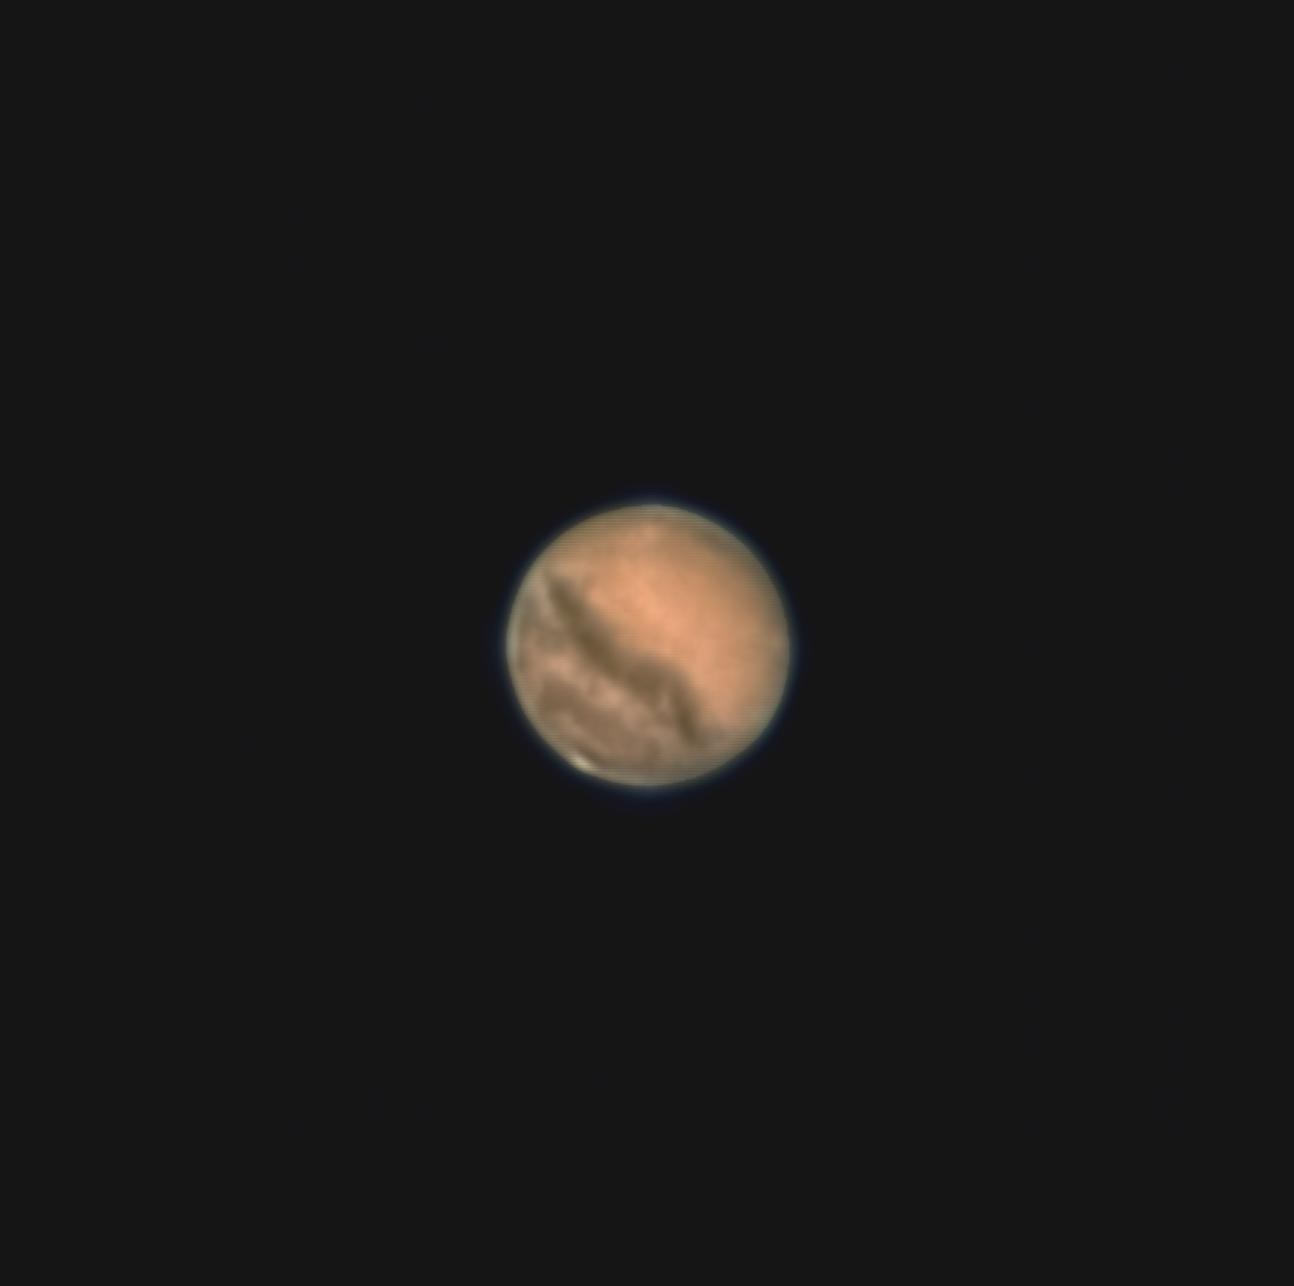 Mars at closest approach 2020